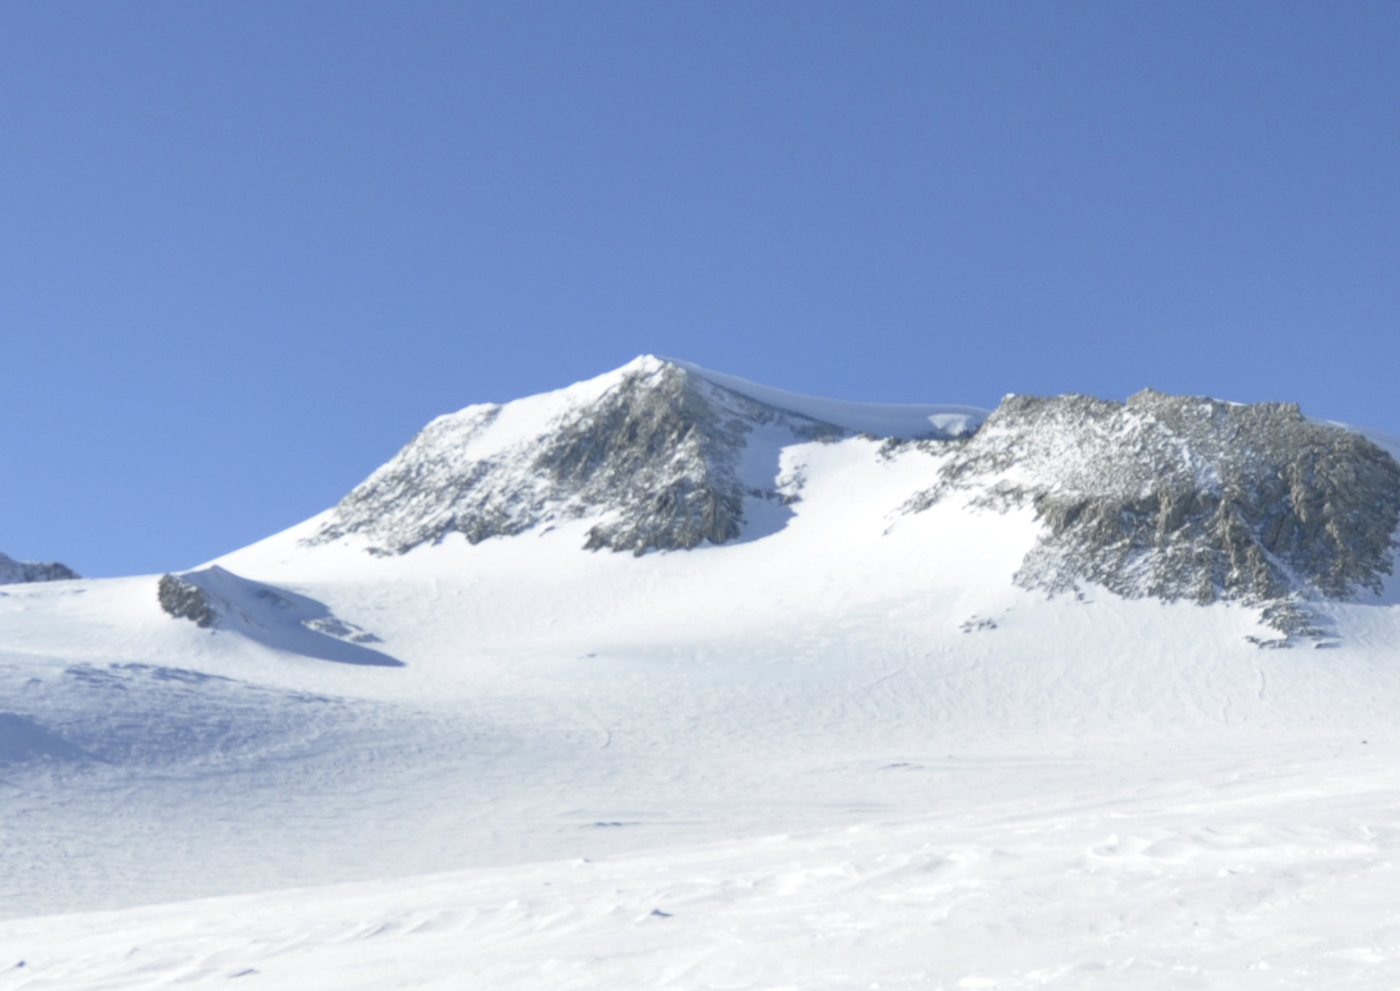 Mount_Vinson_from_NW_at_Vinson_Plateau_b